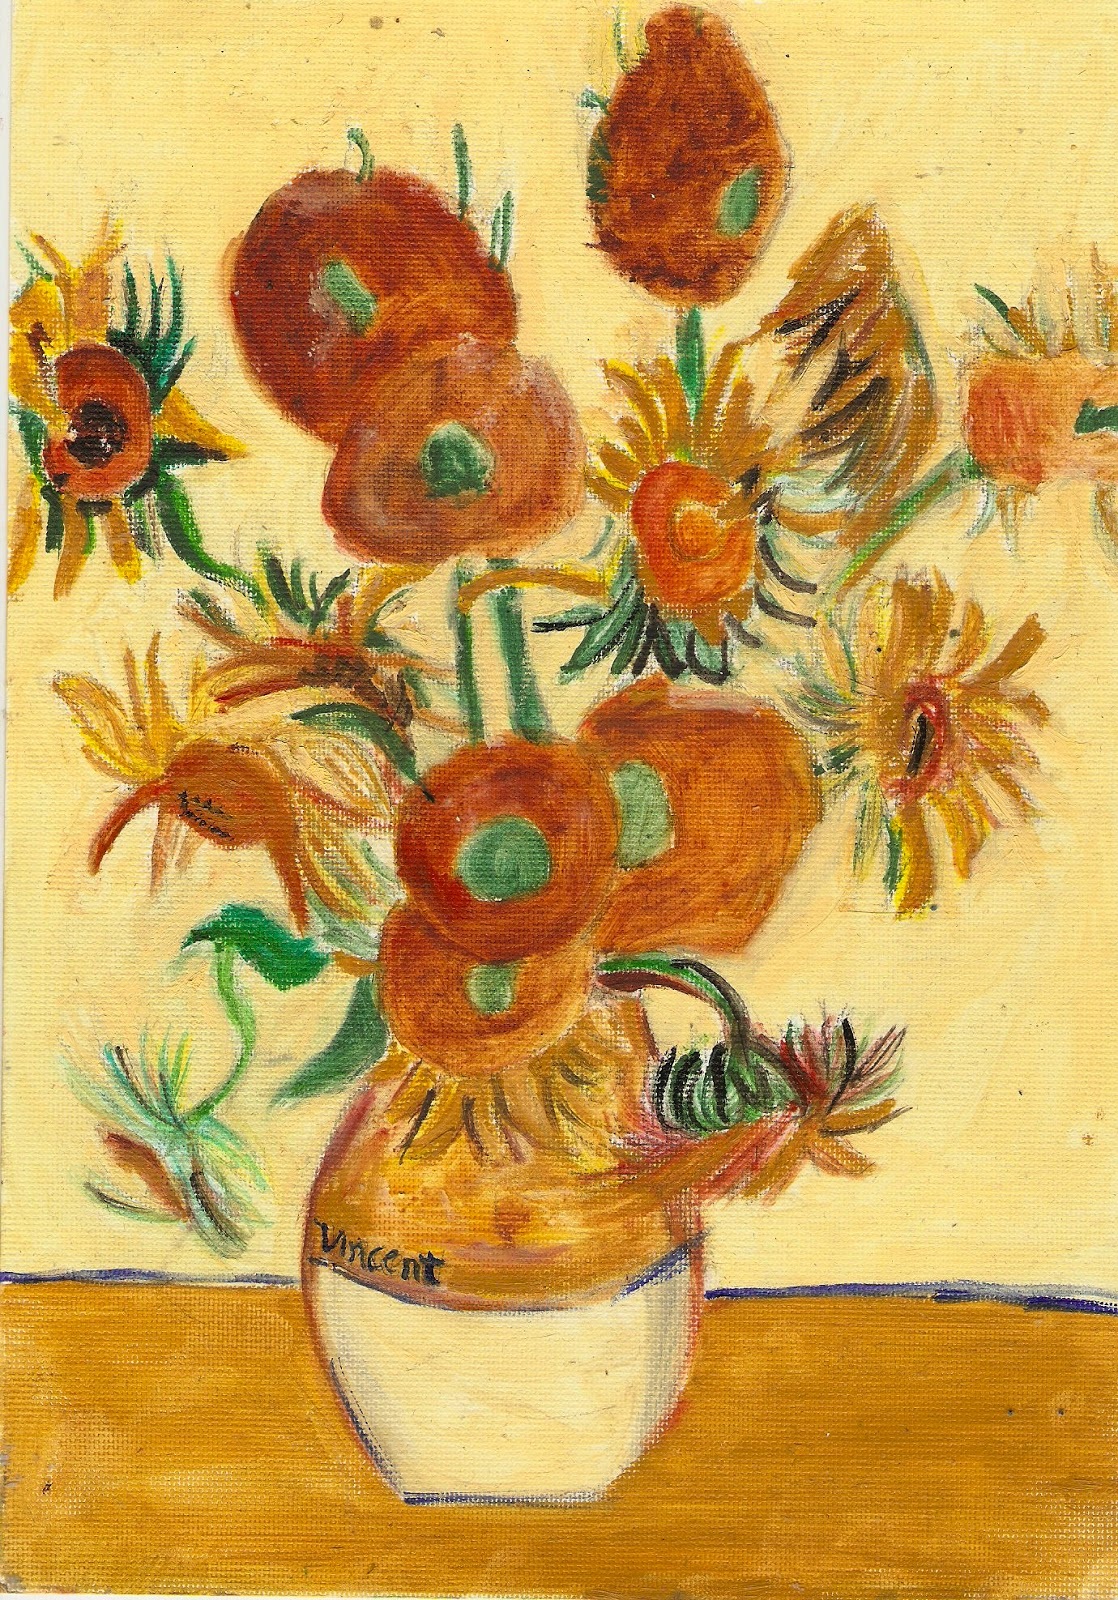 Vincent Van Gogh Paintings Sunflowers Button Tree Crafts Sunflowers Vincent Van Gogh 14 10 12